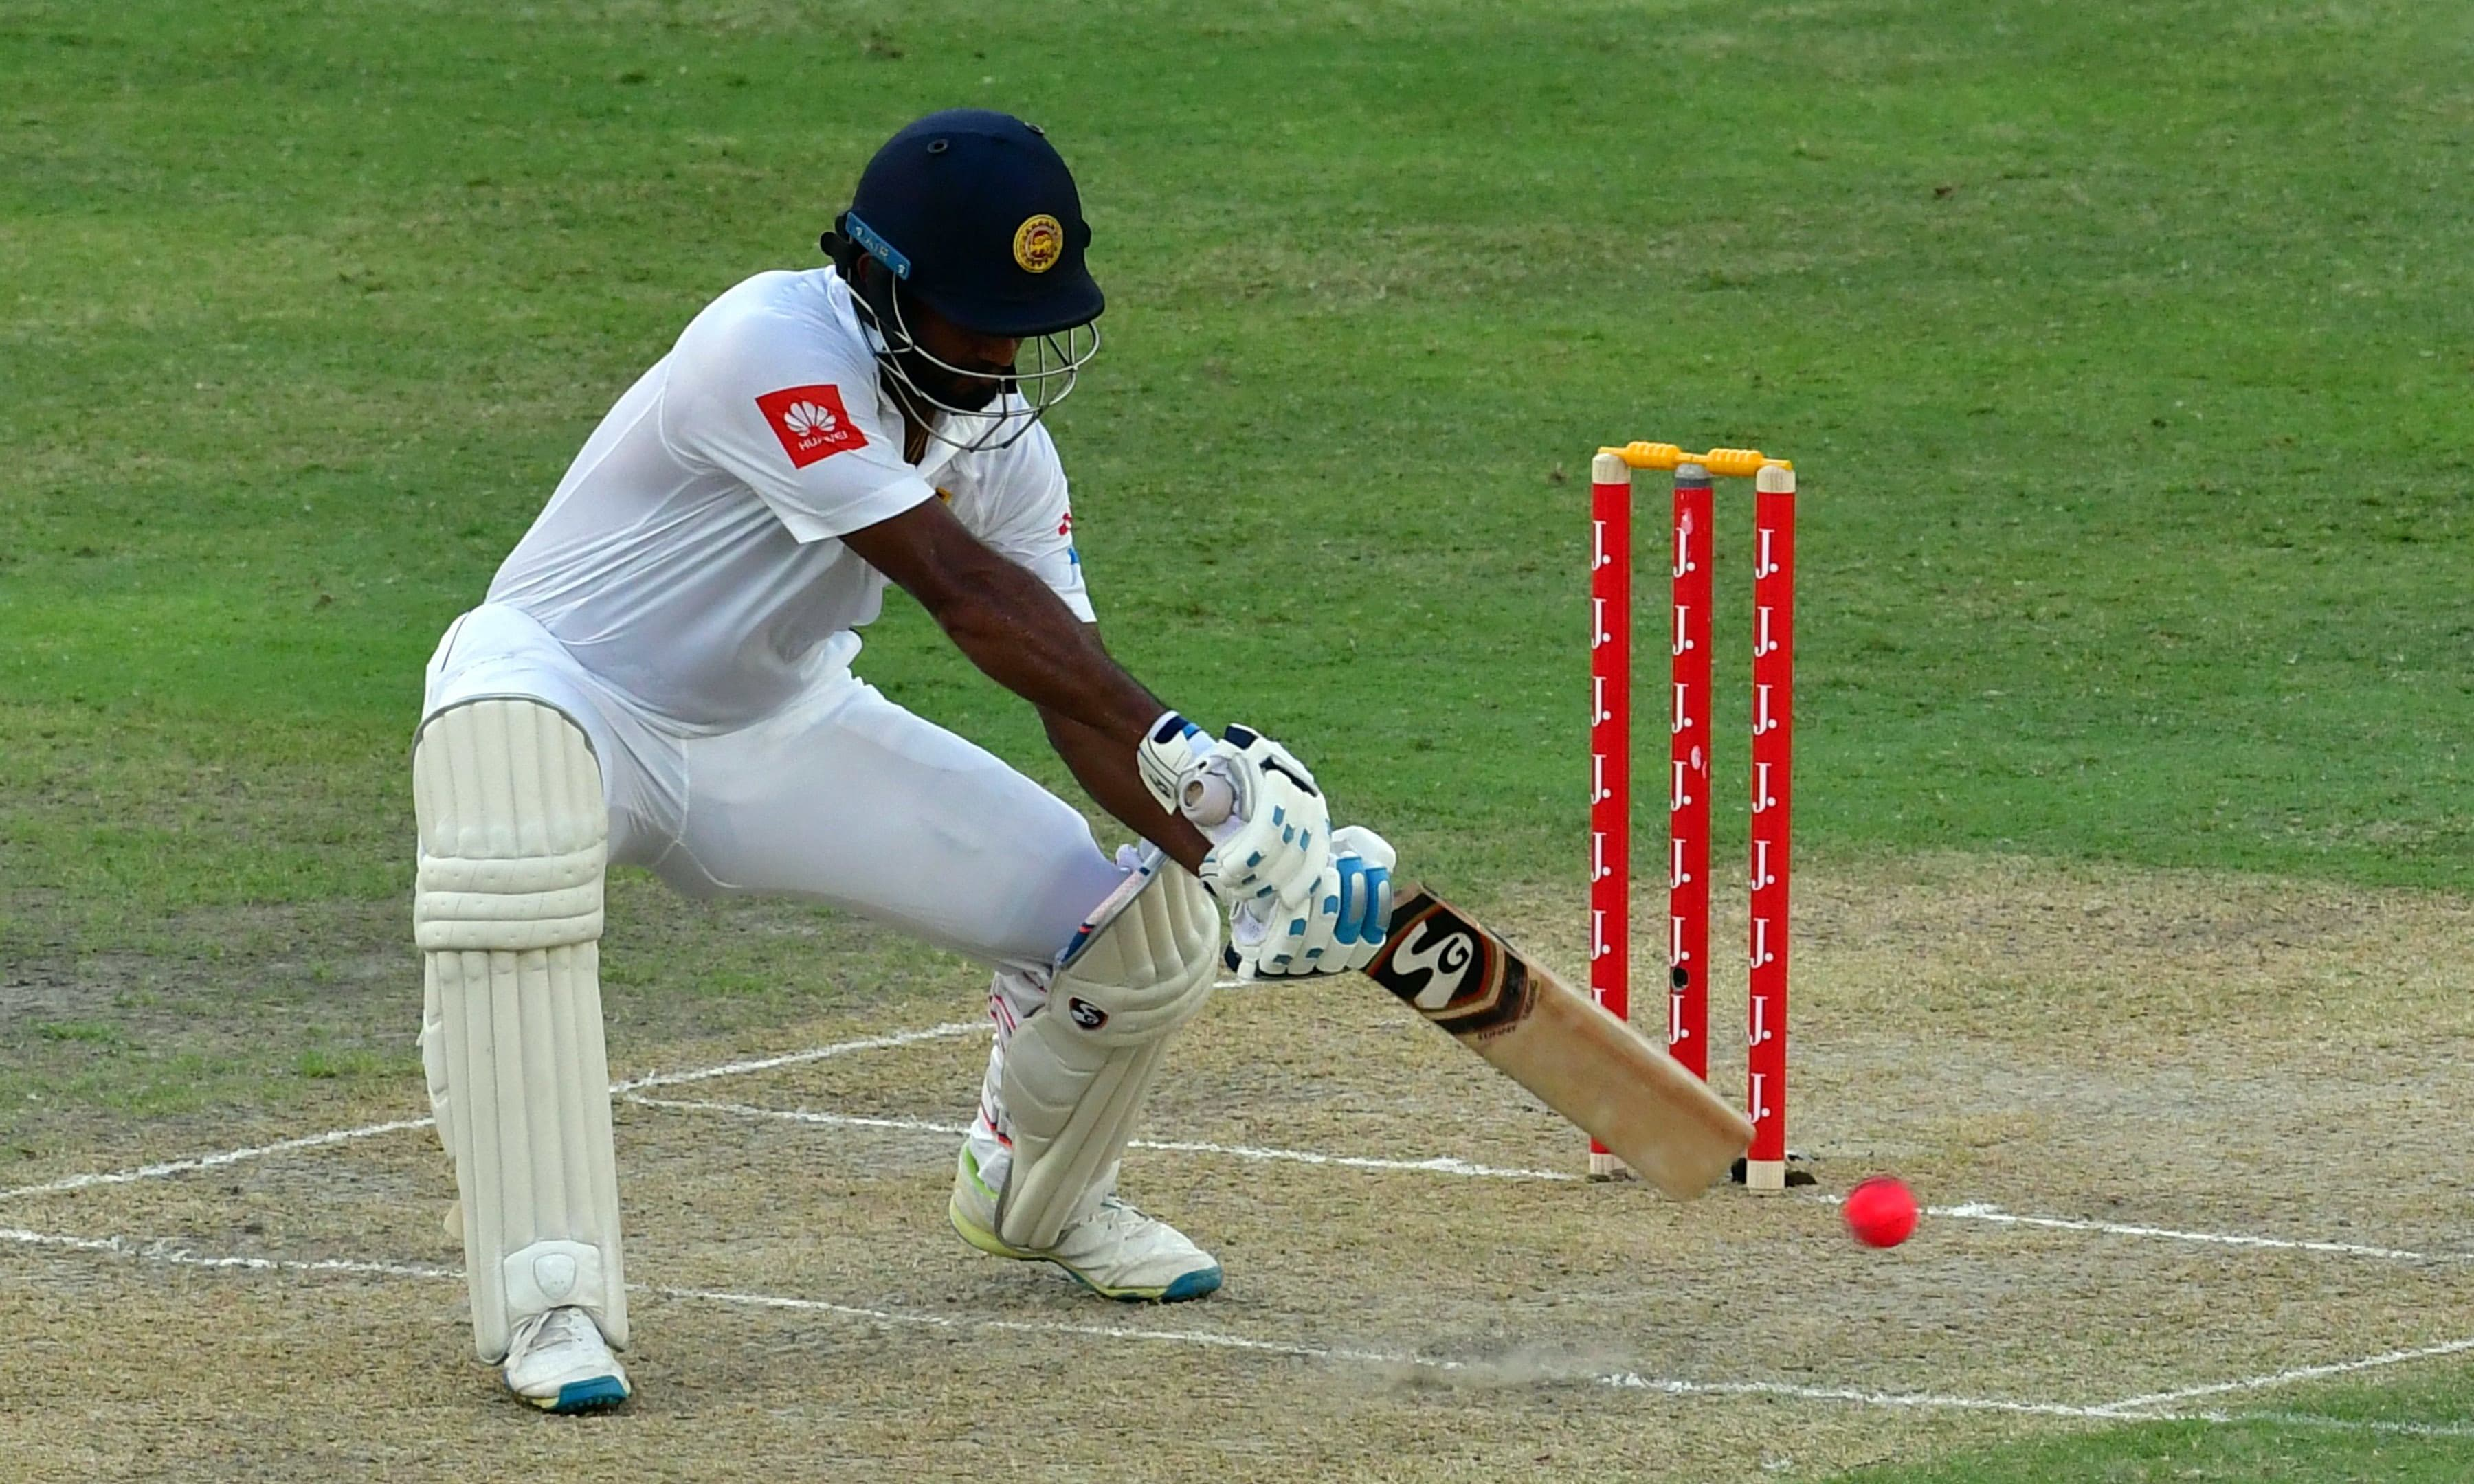 Sri Lanka sniff win over Pakistan after three blows by Dilruwan Perera